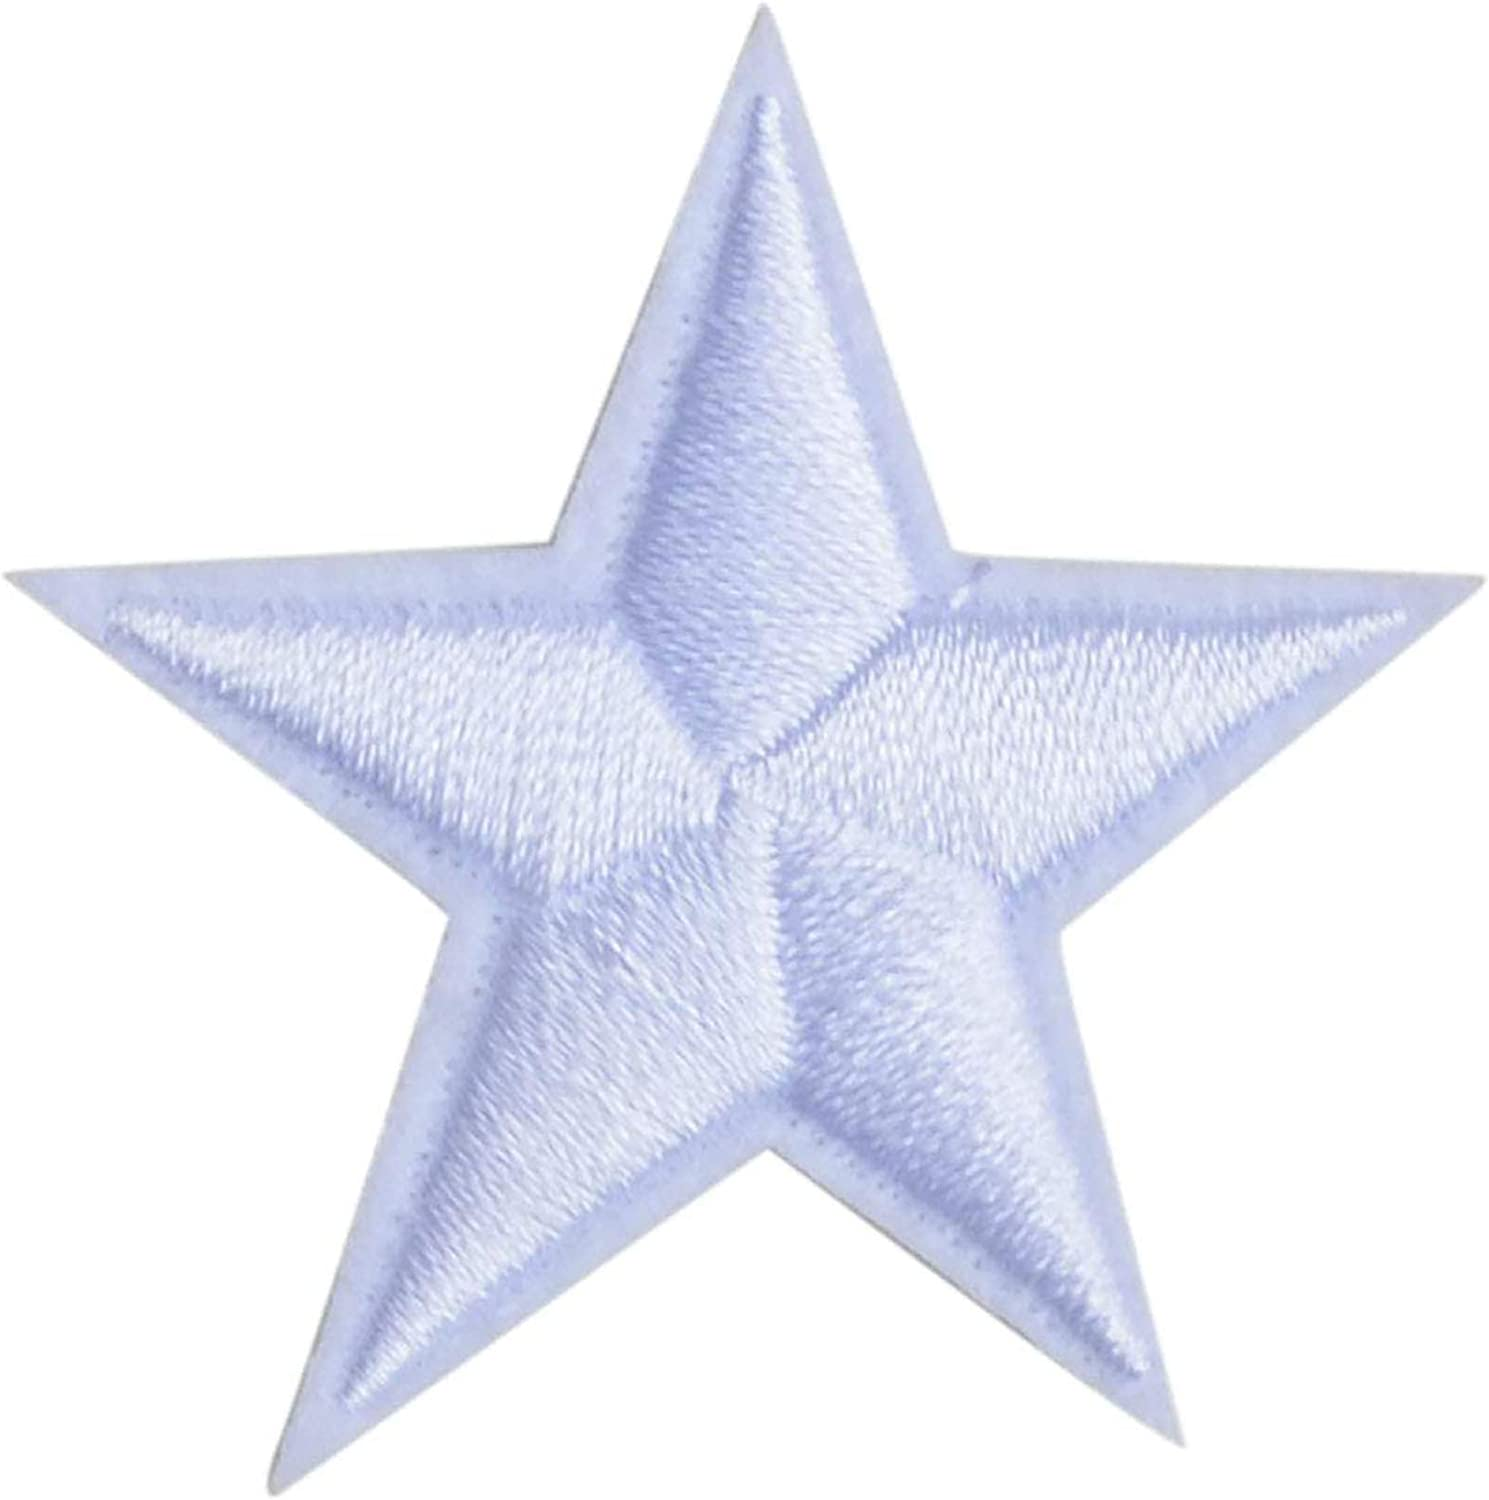 Clothes Decoration Sew on Stars Patches Badge Stickers Iron-On Patch Applique